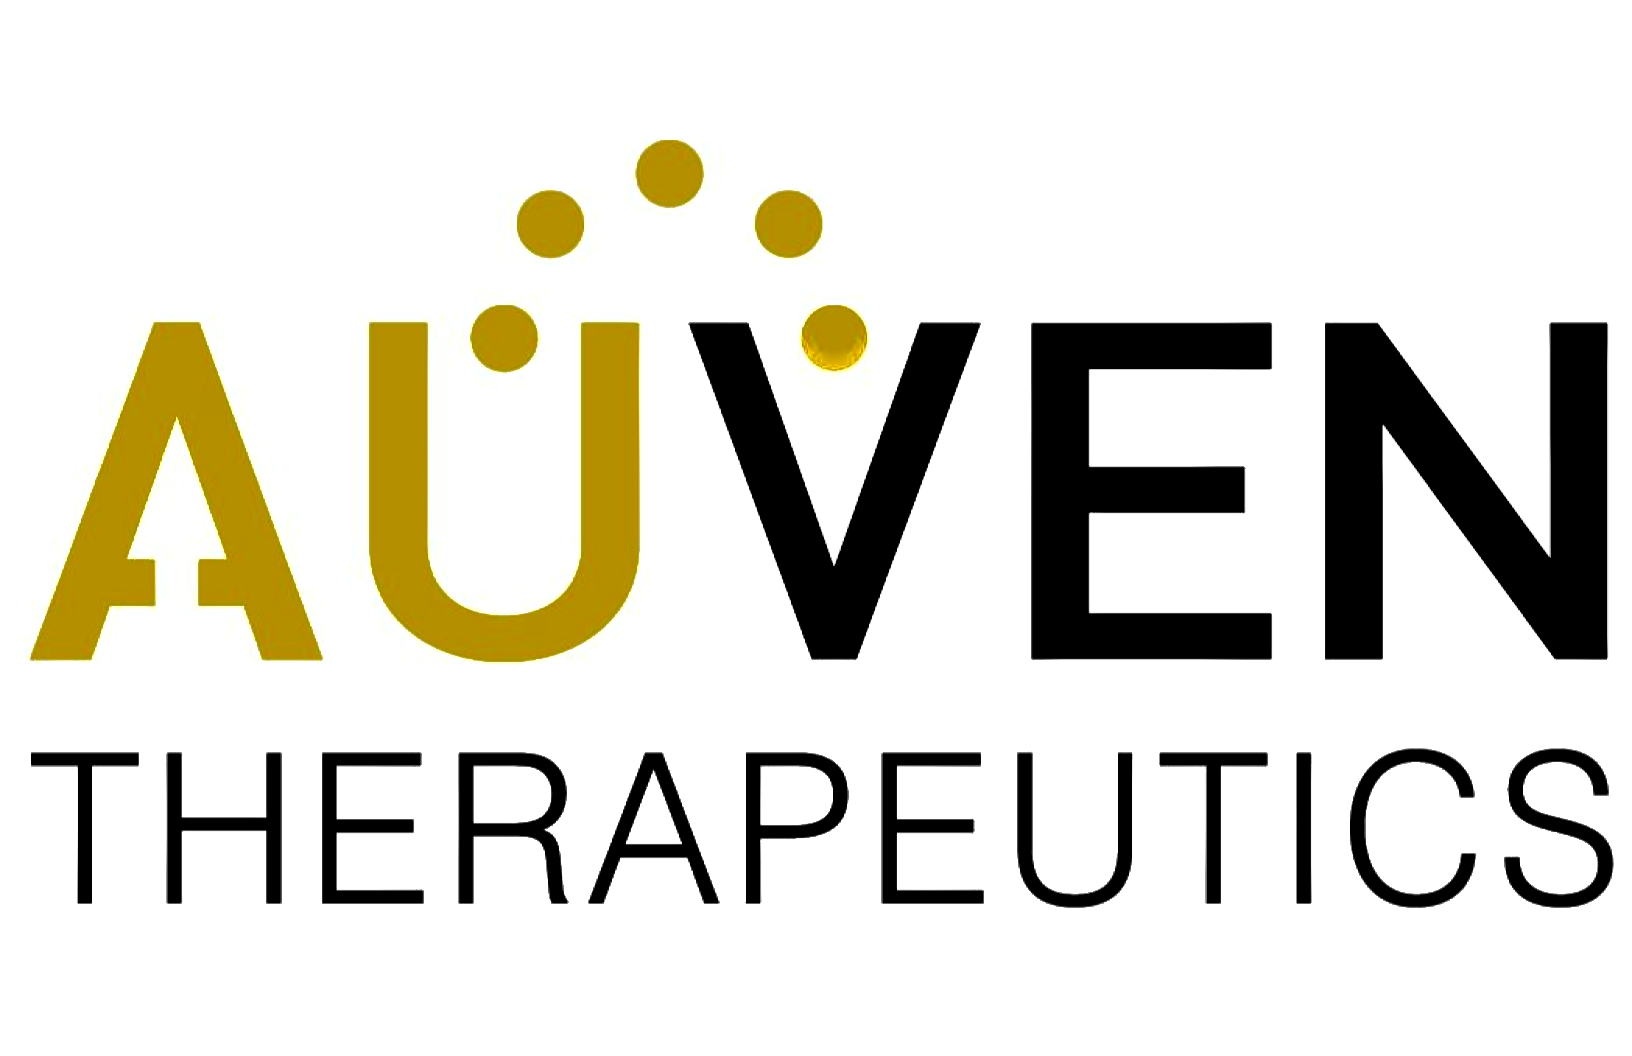 AUVEN Therapeutics